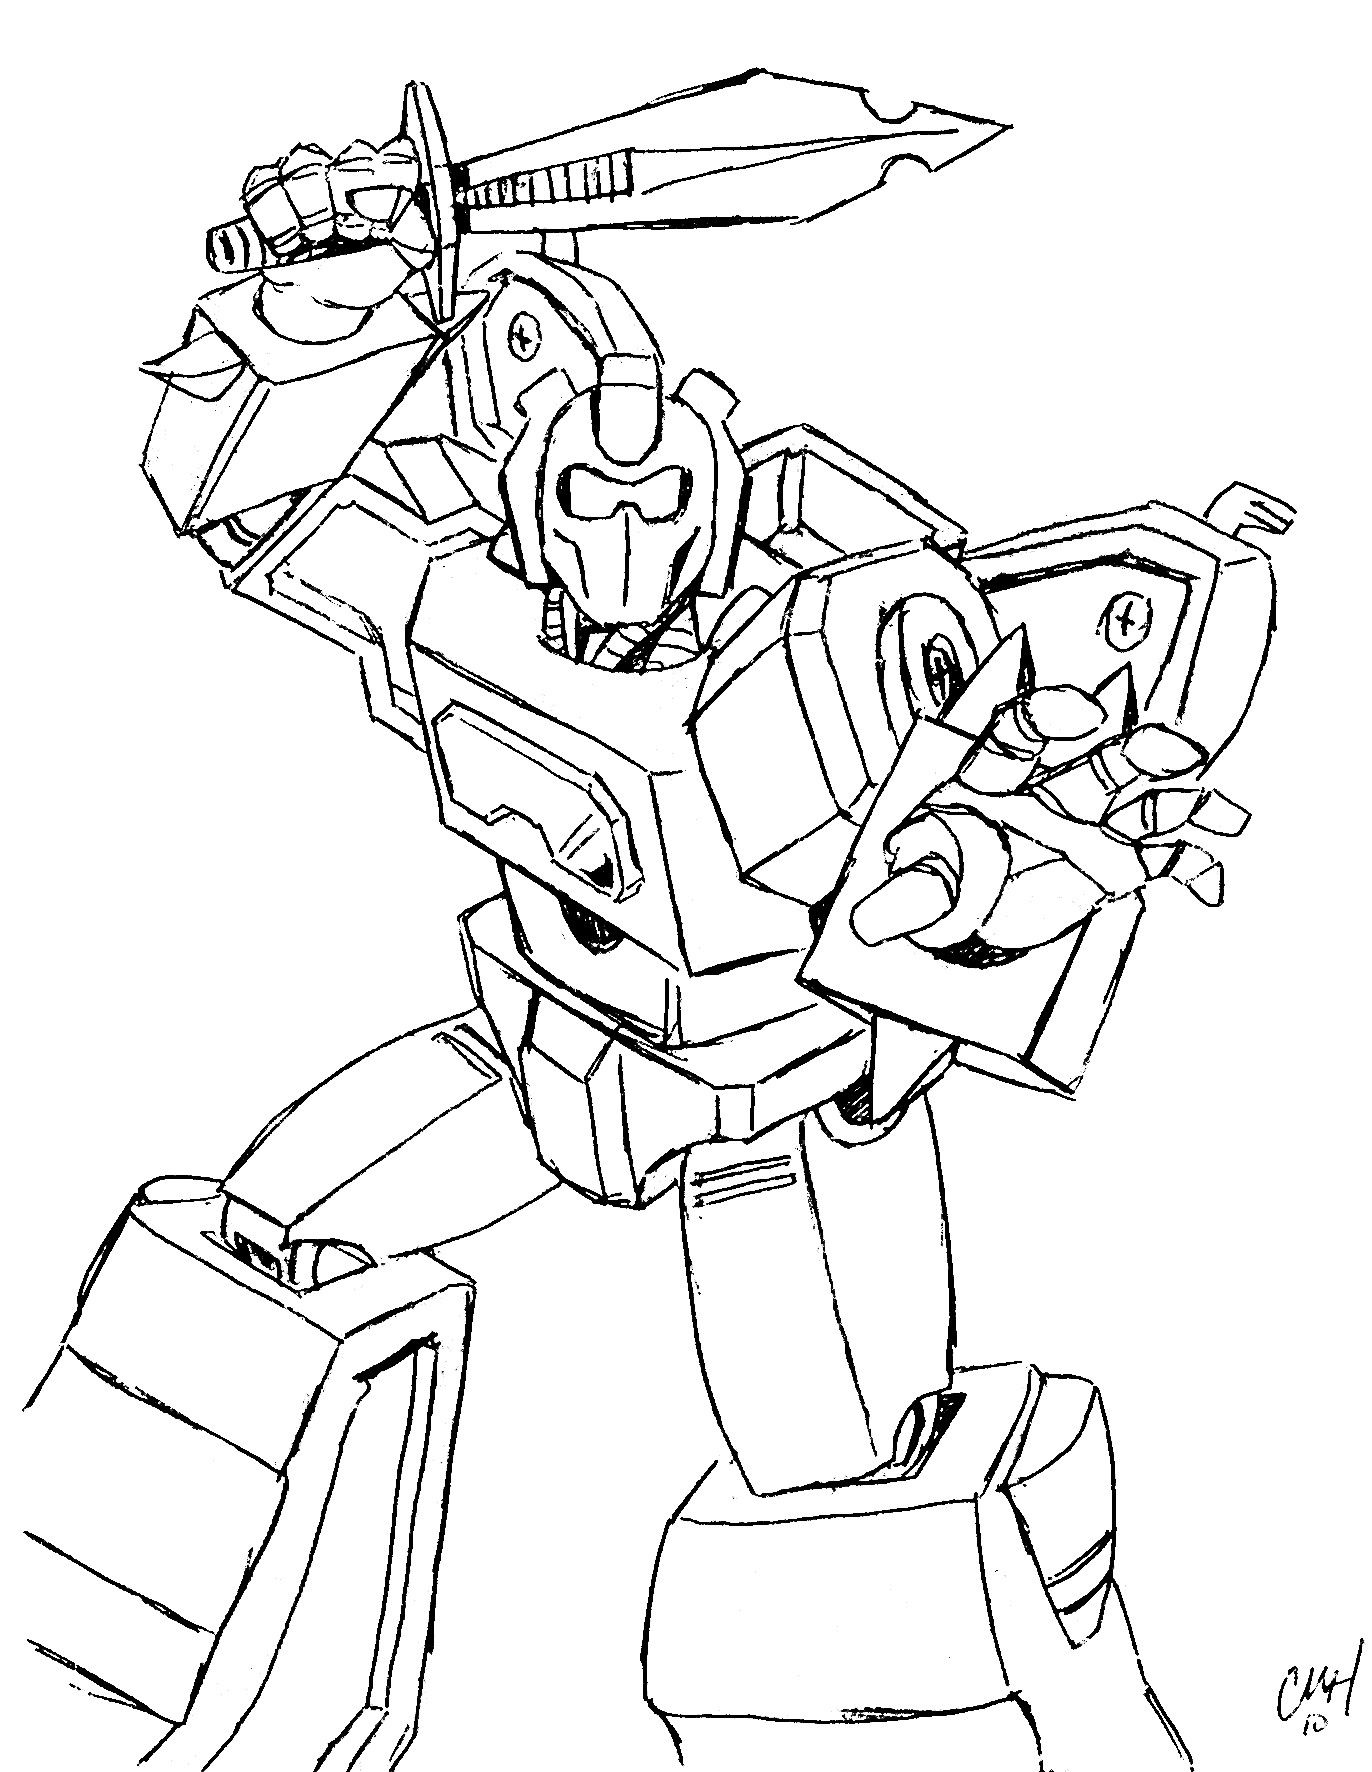 10 Sideswipe Coloring Transformers Coloring Pages Bee Coloring Pages Toddler Coloring Book